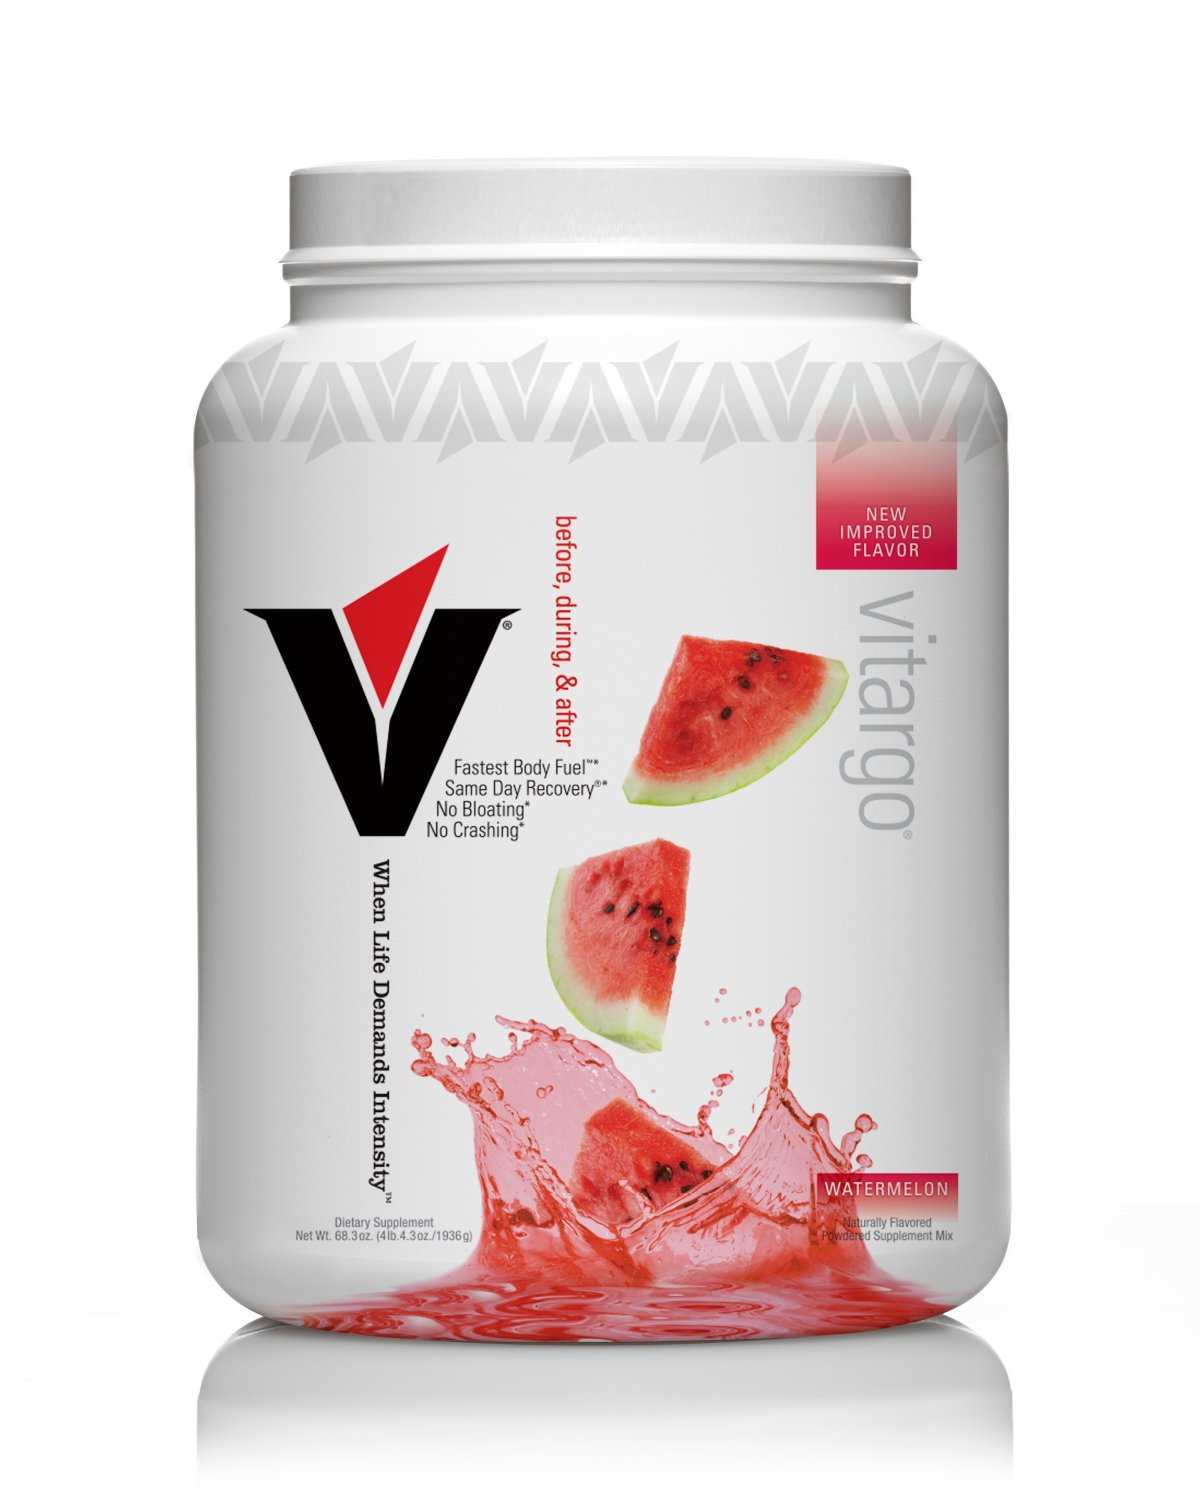 Vitargo Watermelon 50 Scoop 50twtrvit